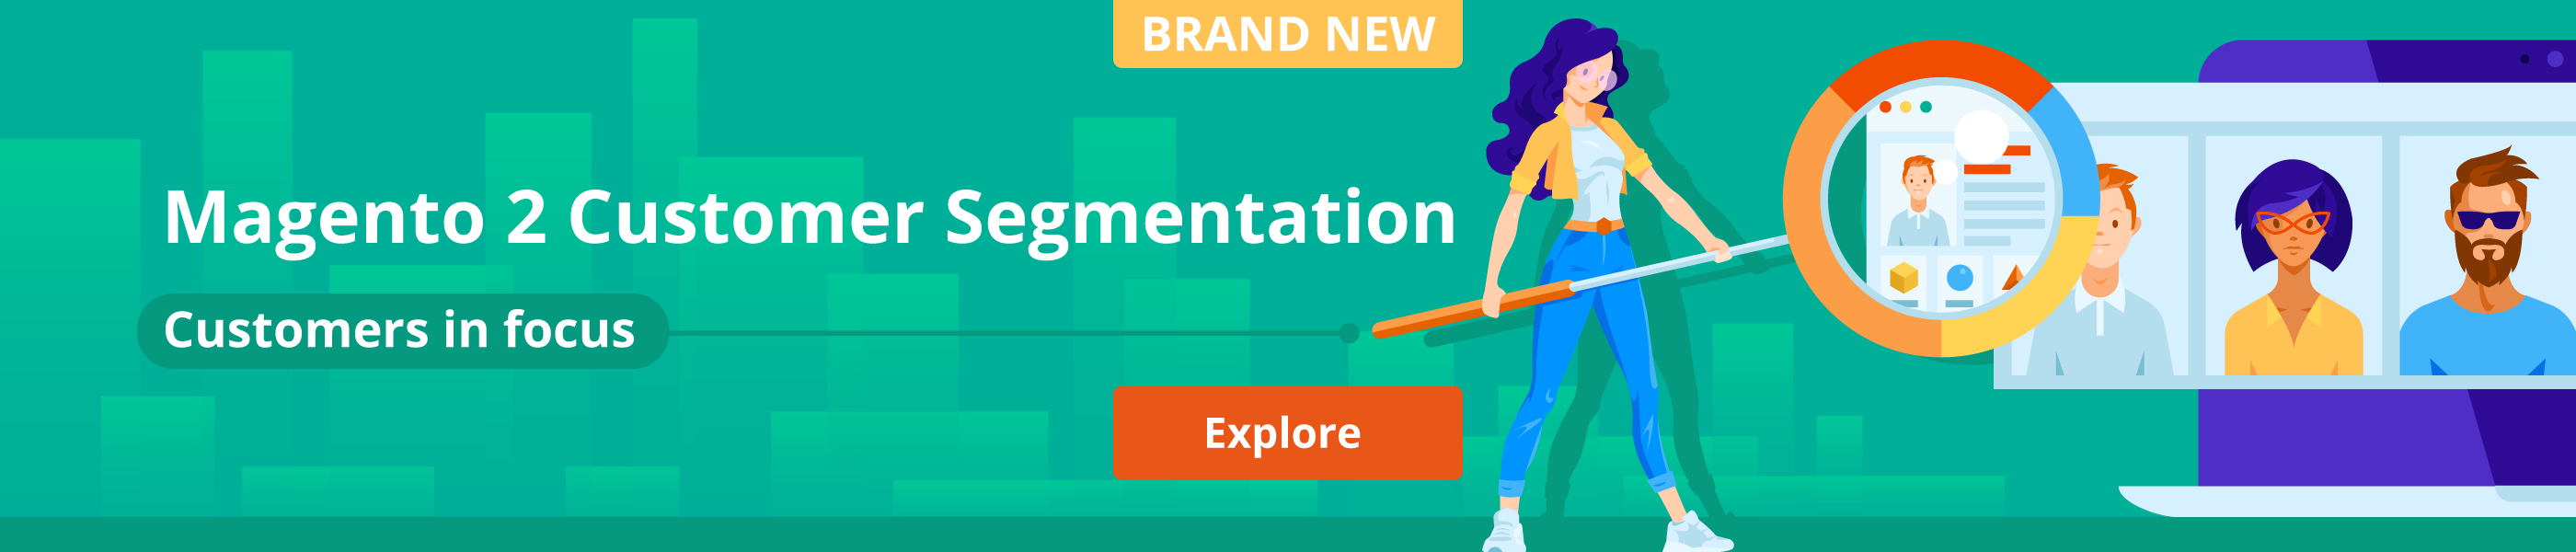 Customer Segmentation release